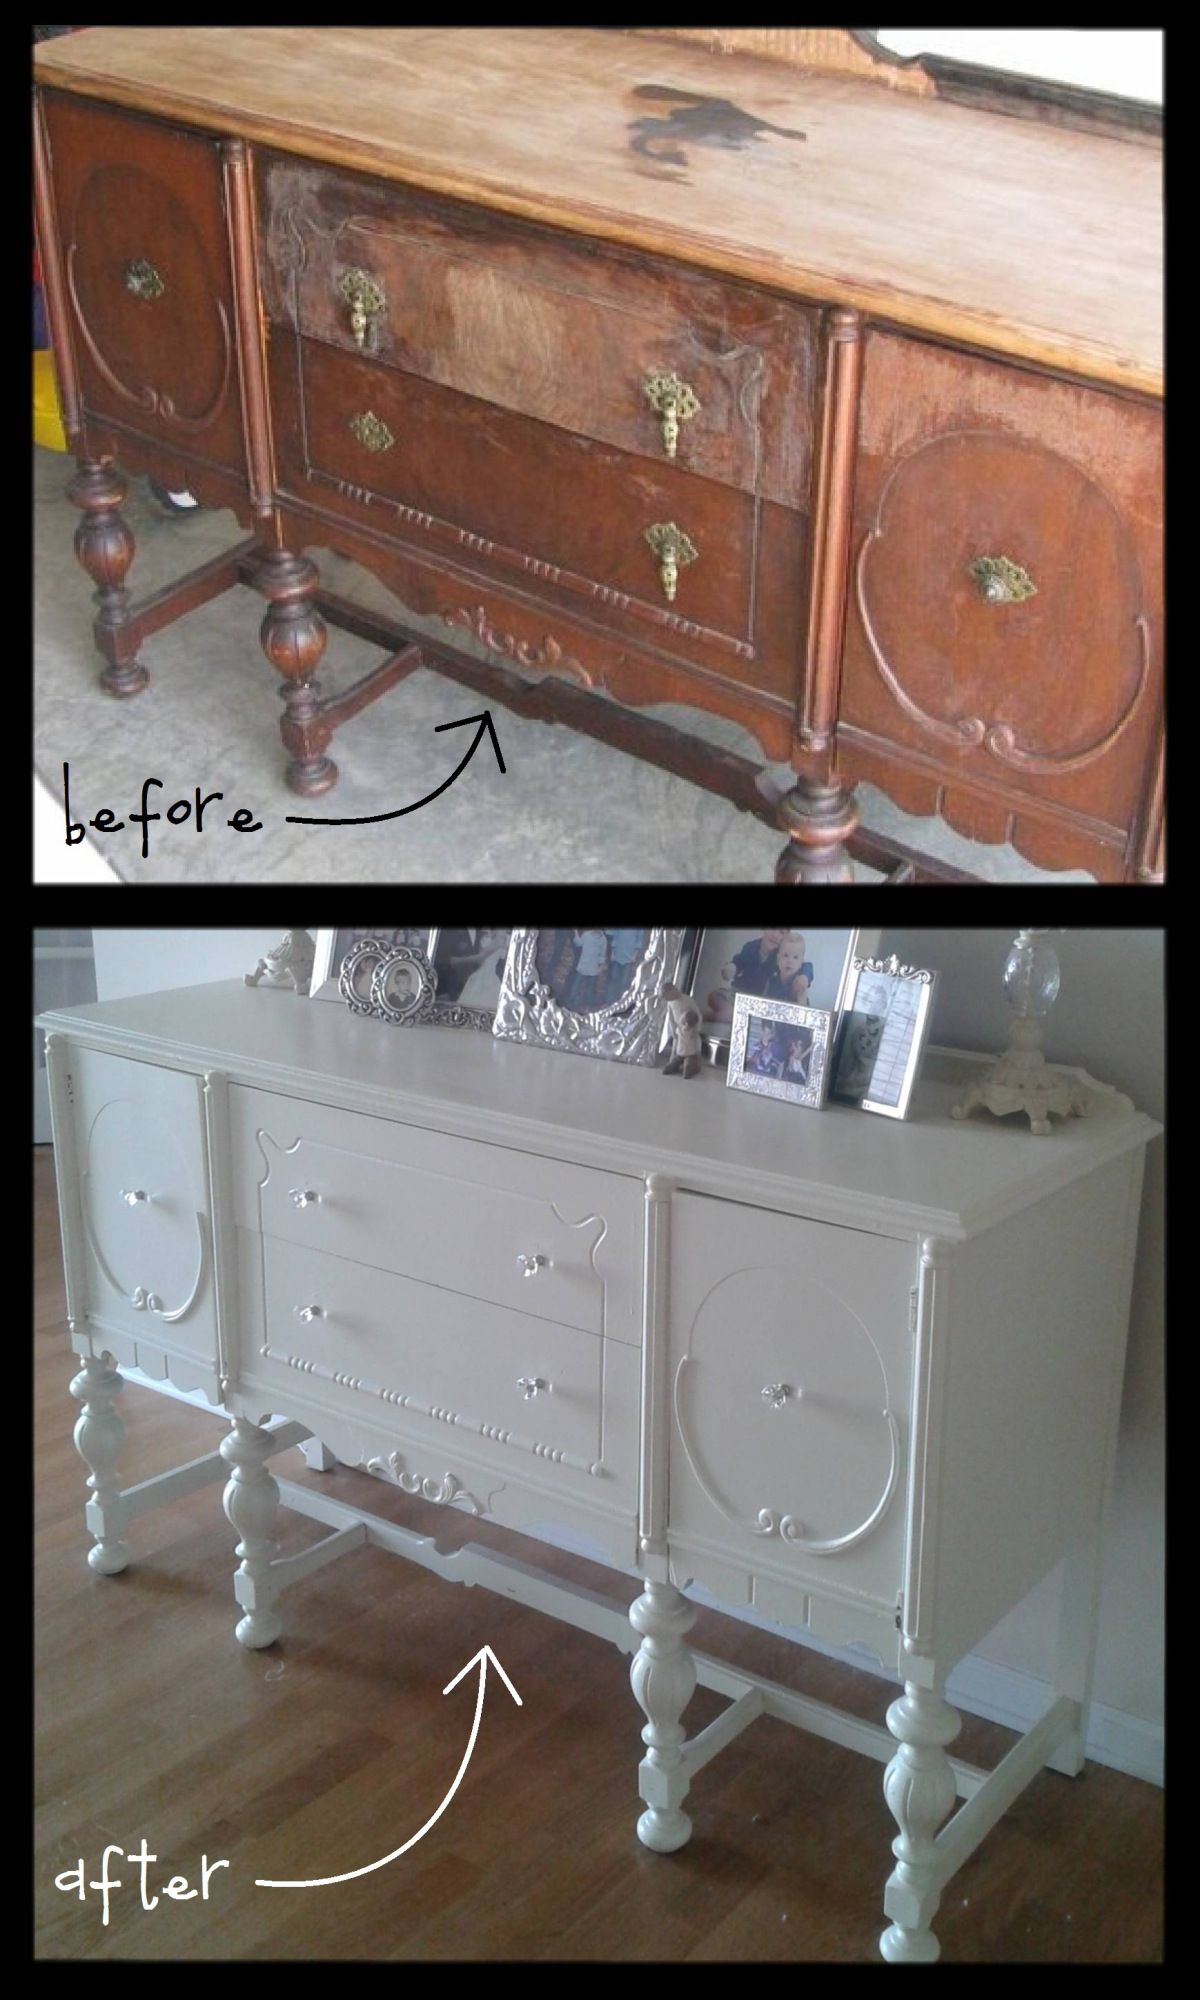 Craigslist syracuse kitchen cabinets - How To Score And Refinish A Craigslist Piece